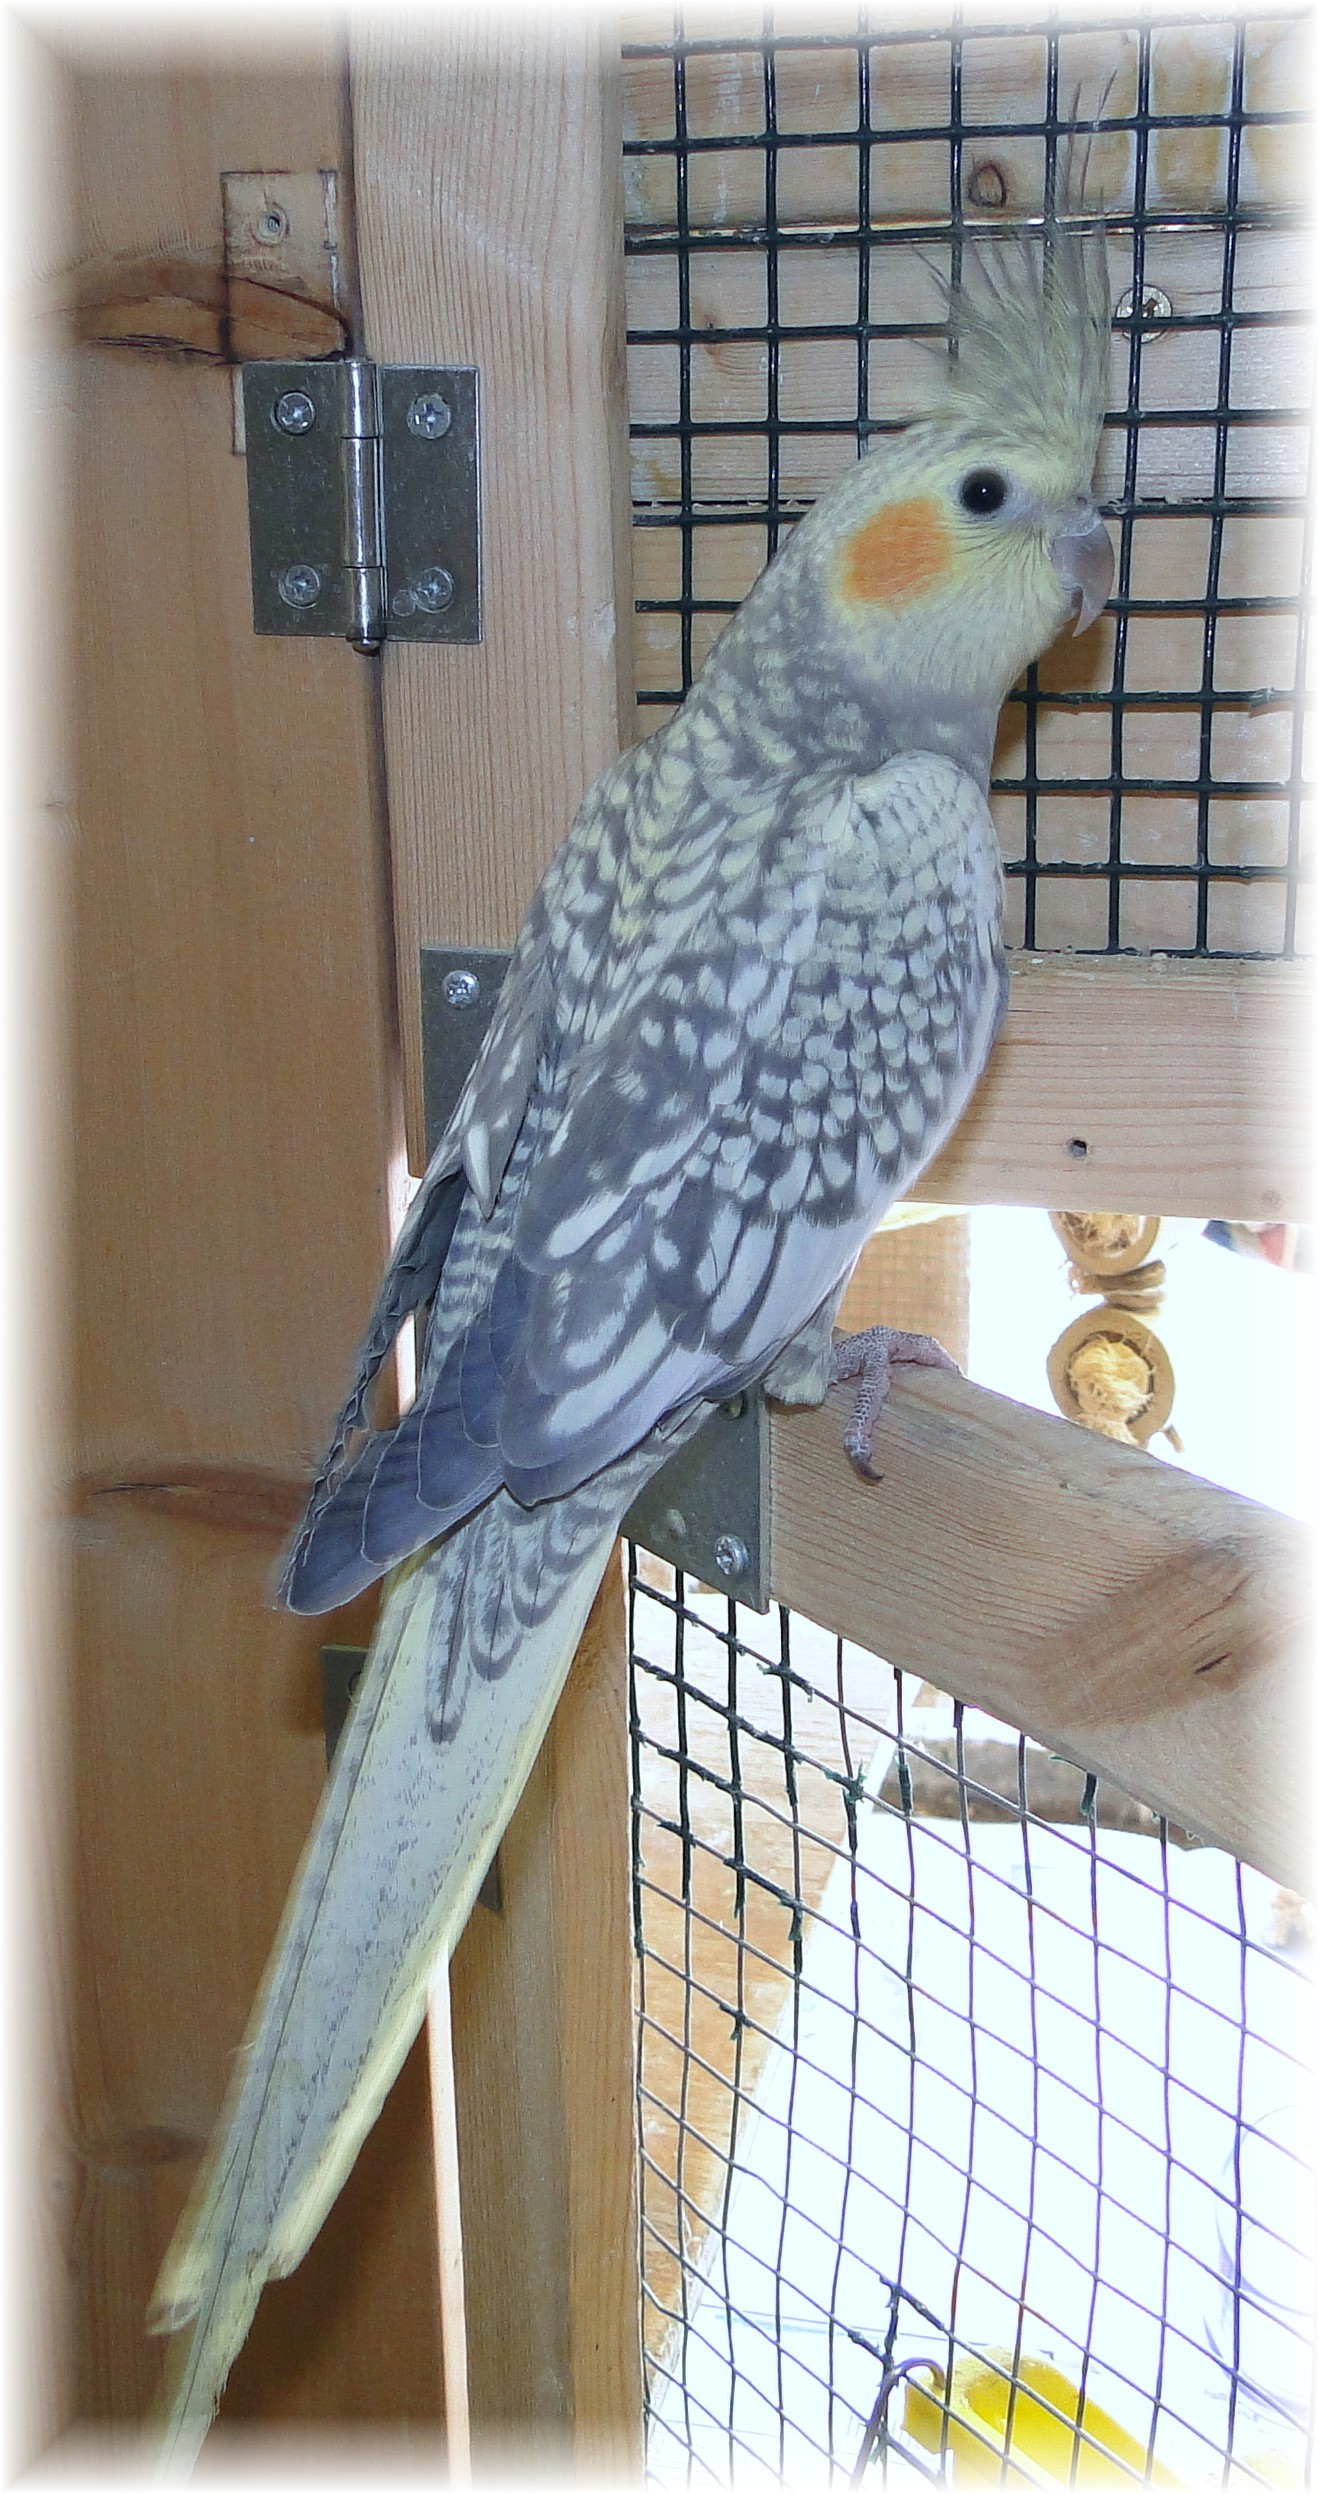 For Sale at Feather Focus, Cockatiels, Capes, Pionus